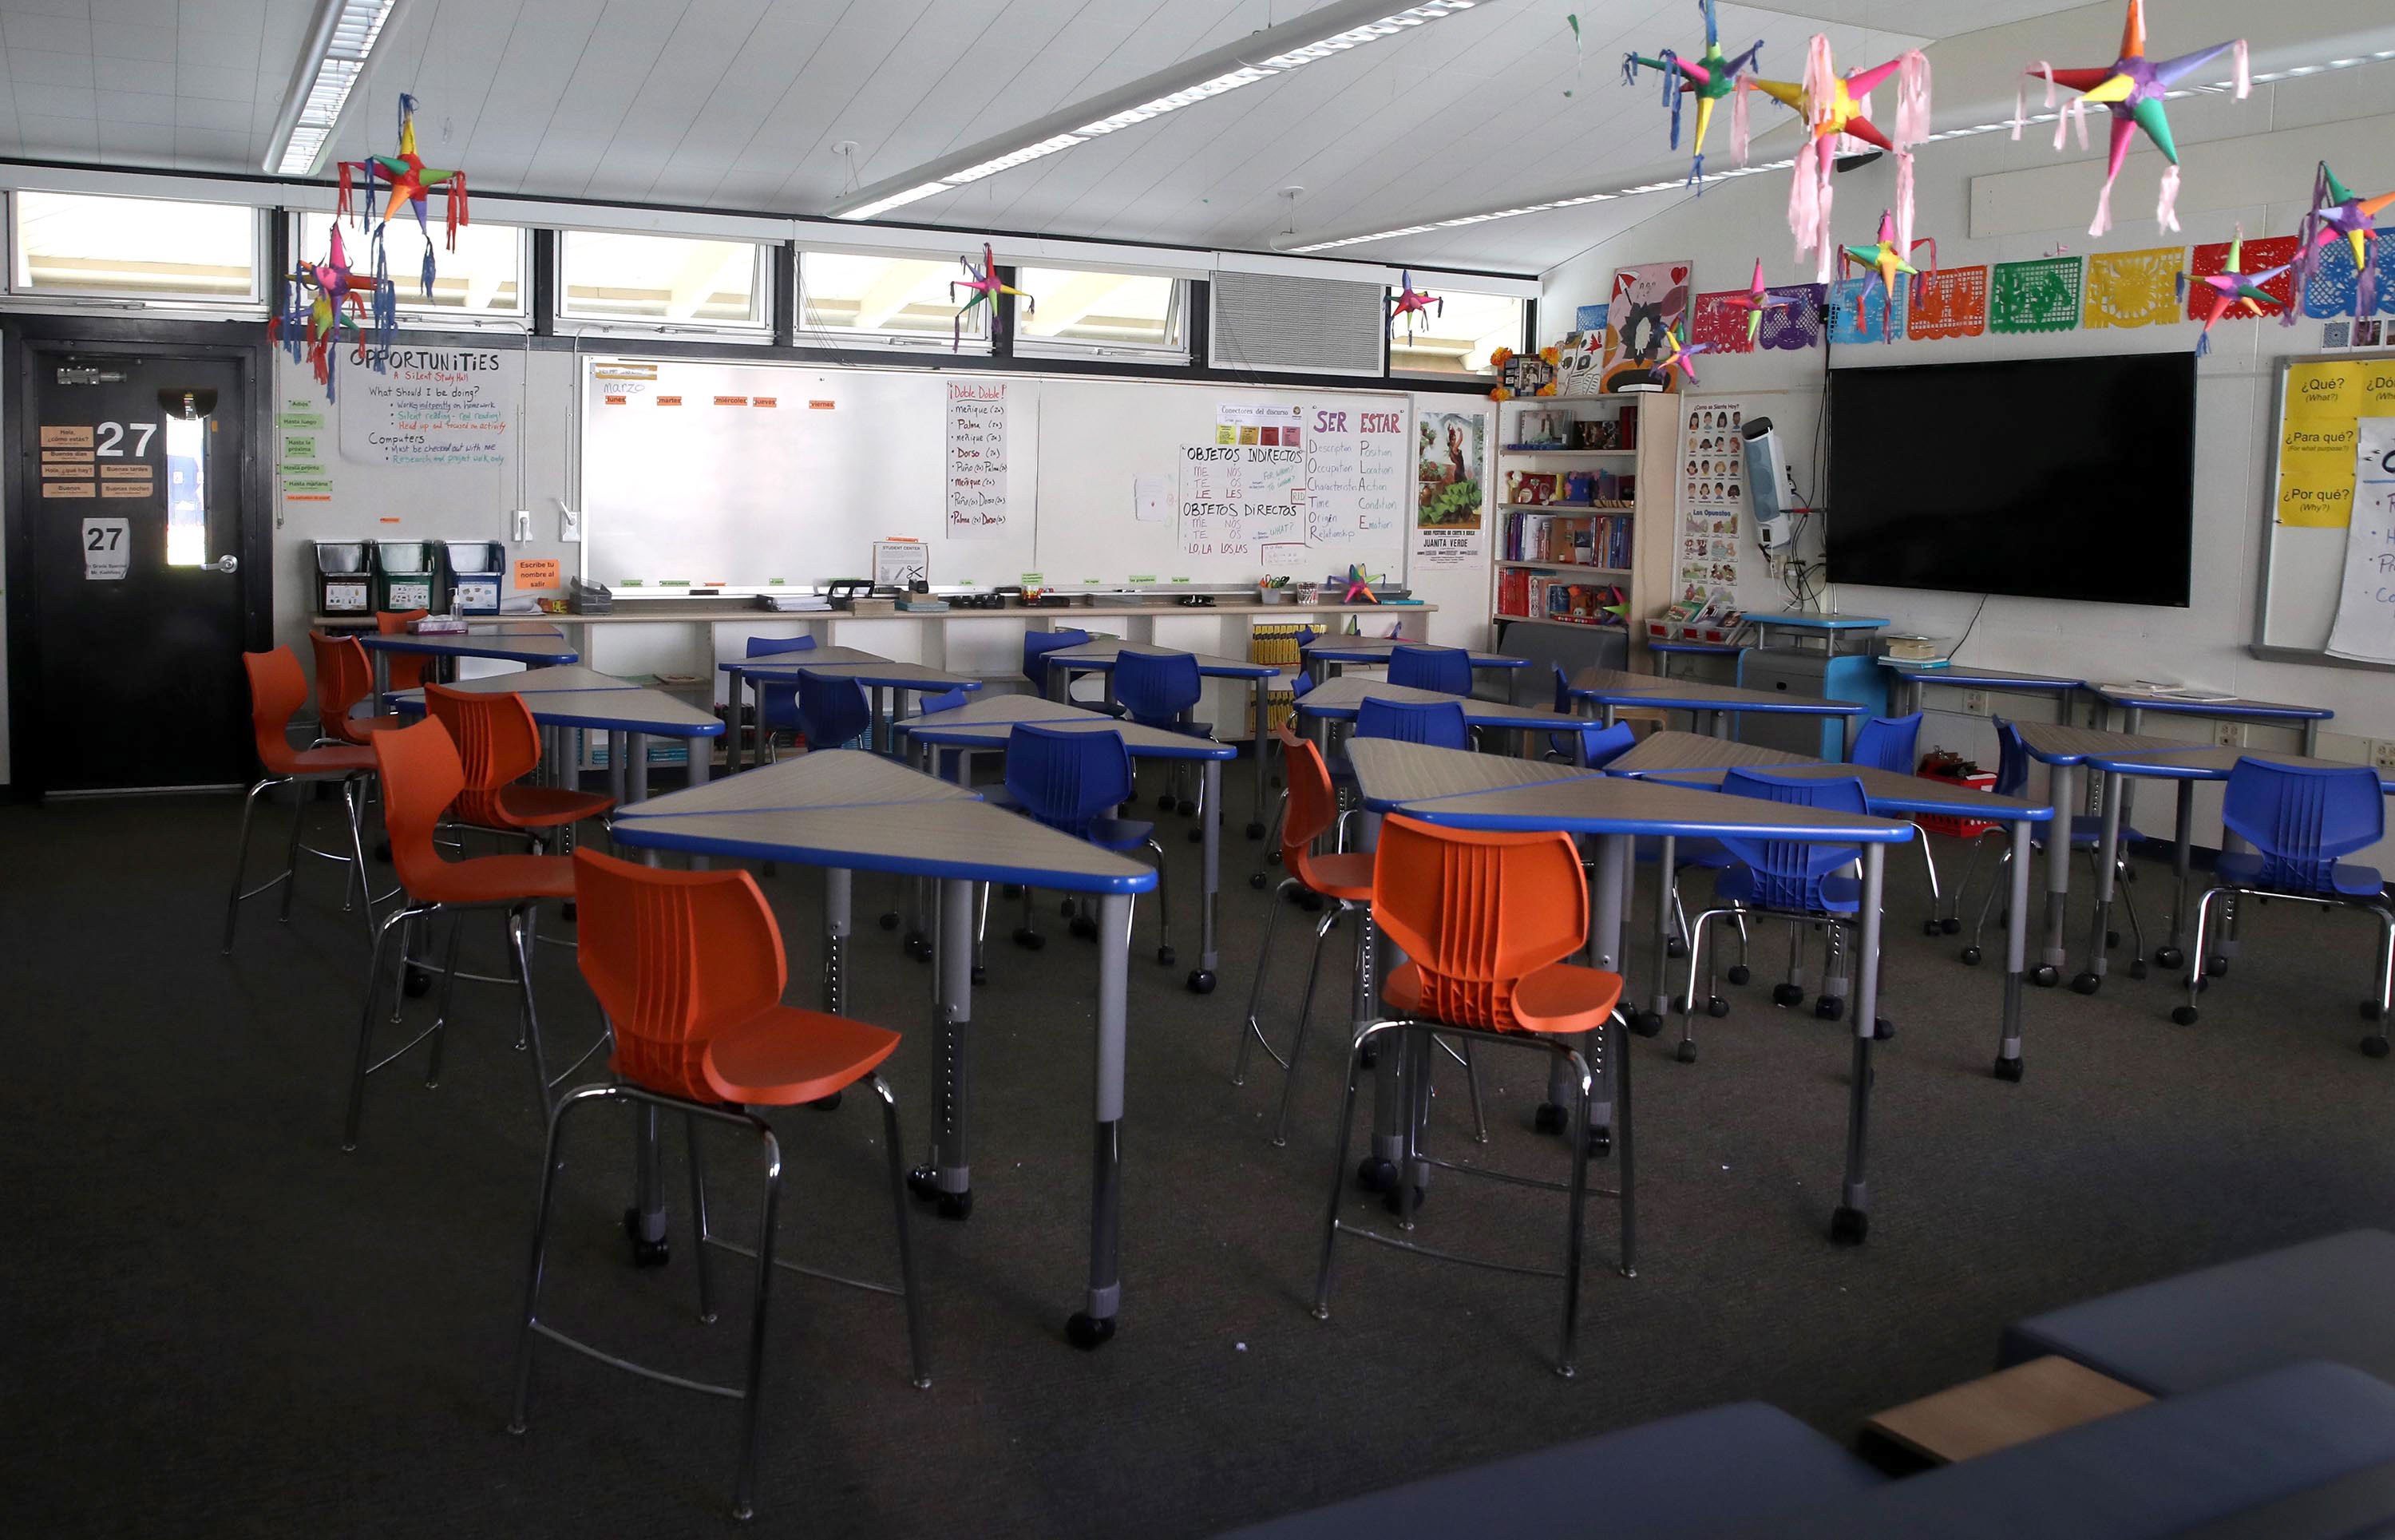 An empty classroom in seen at Kent Middle School on April 1 in Kentfield, California.